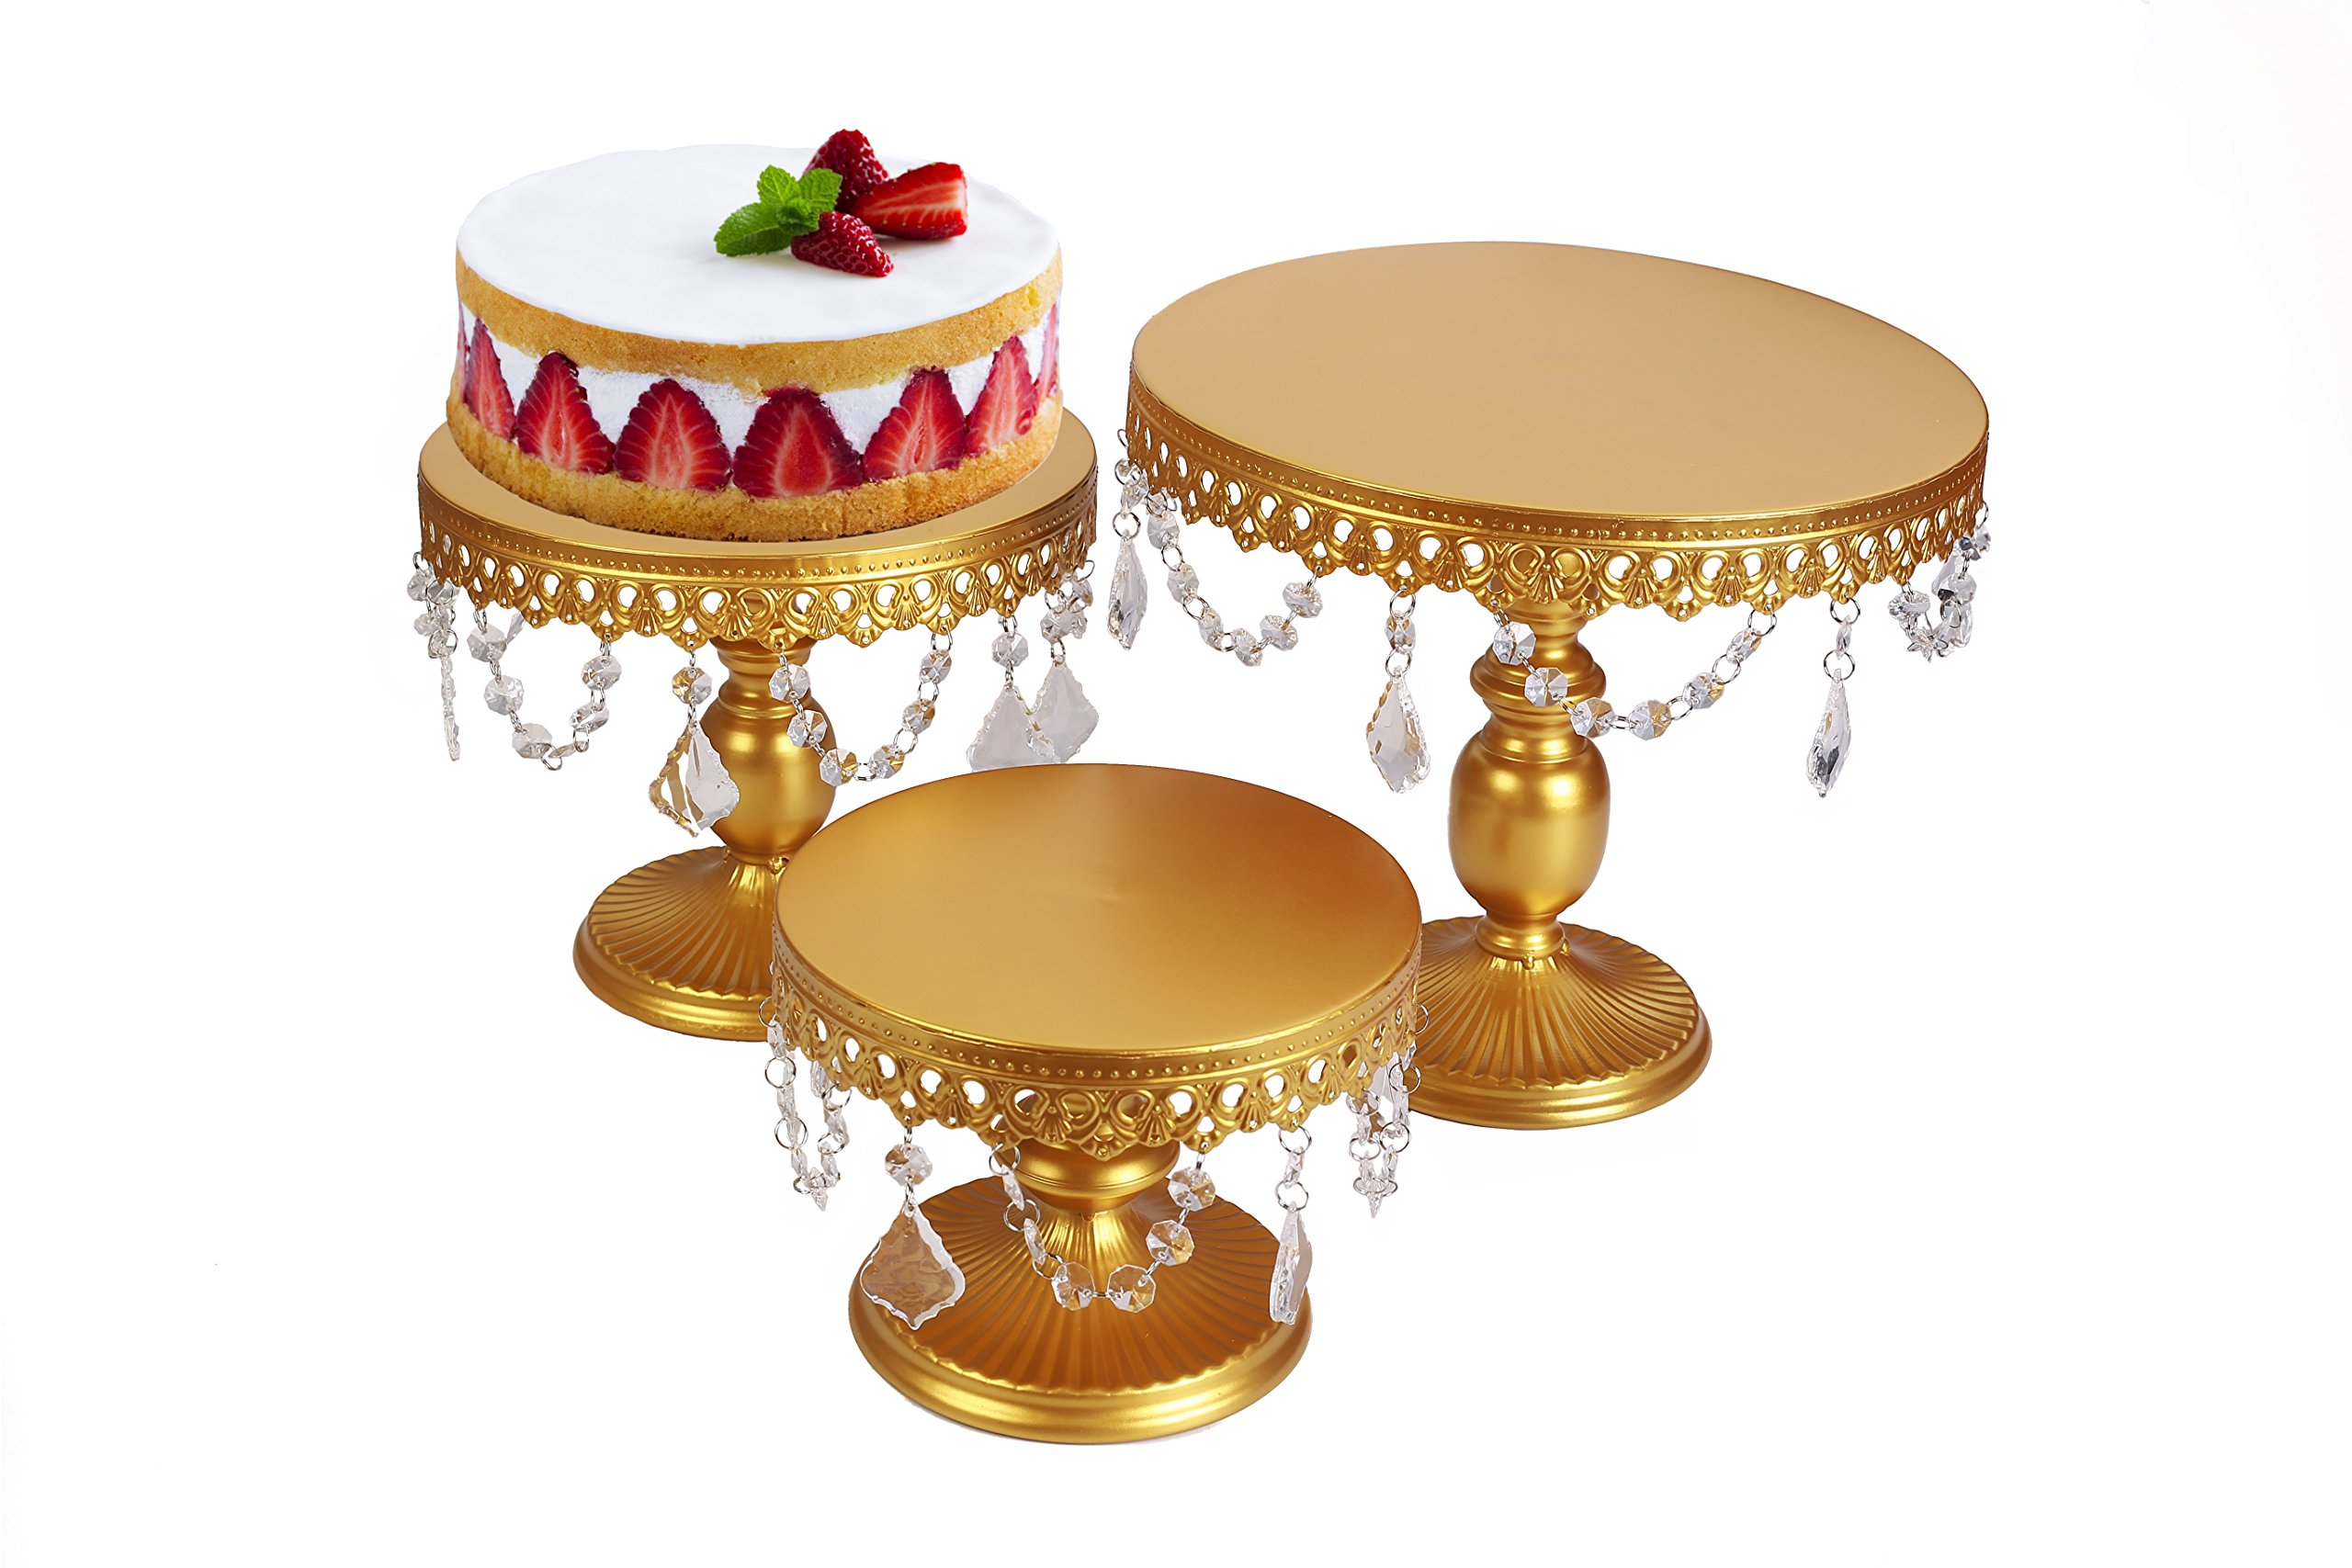 VILAVITA 3-Set Antique Cake Stand Round Cupcake Stands Metal Dessert Display with Pendants and Beads, Gold by VILAVITA (Image #4)